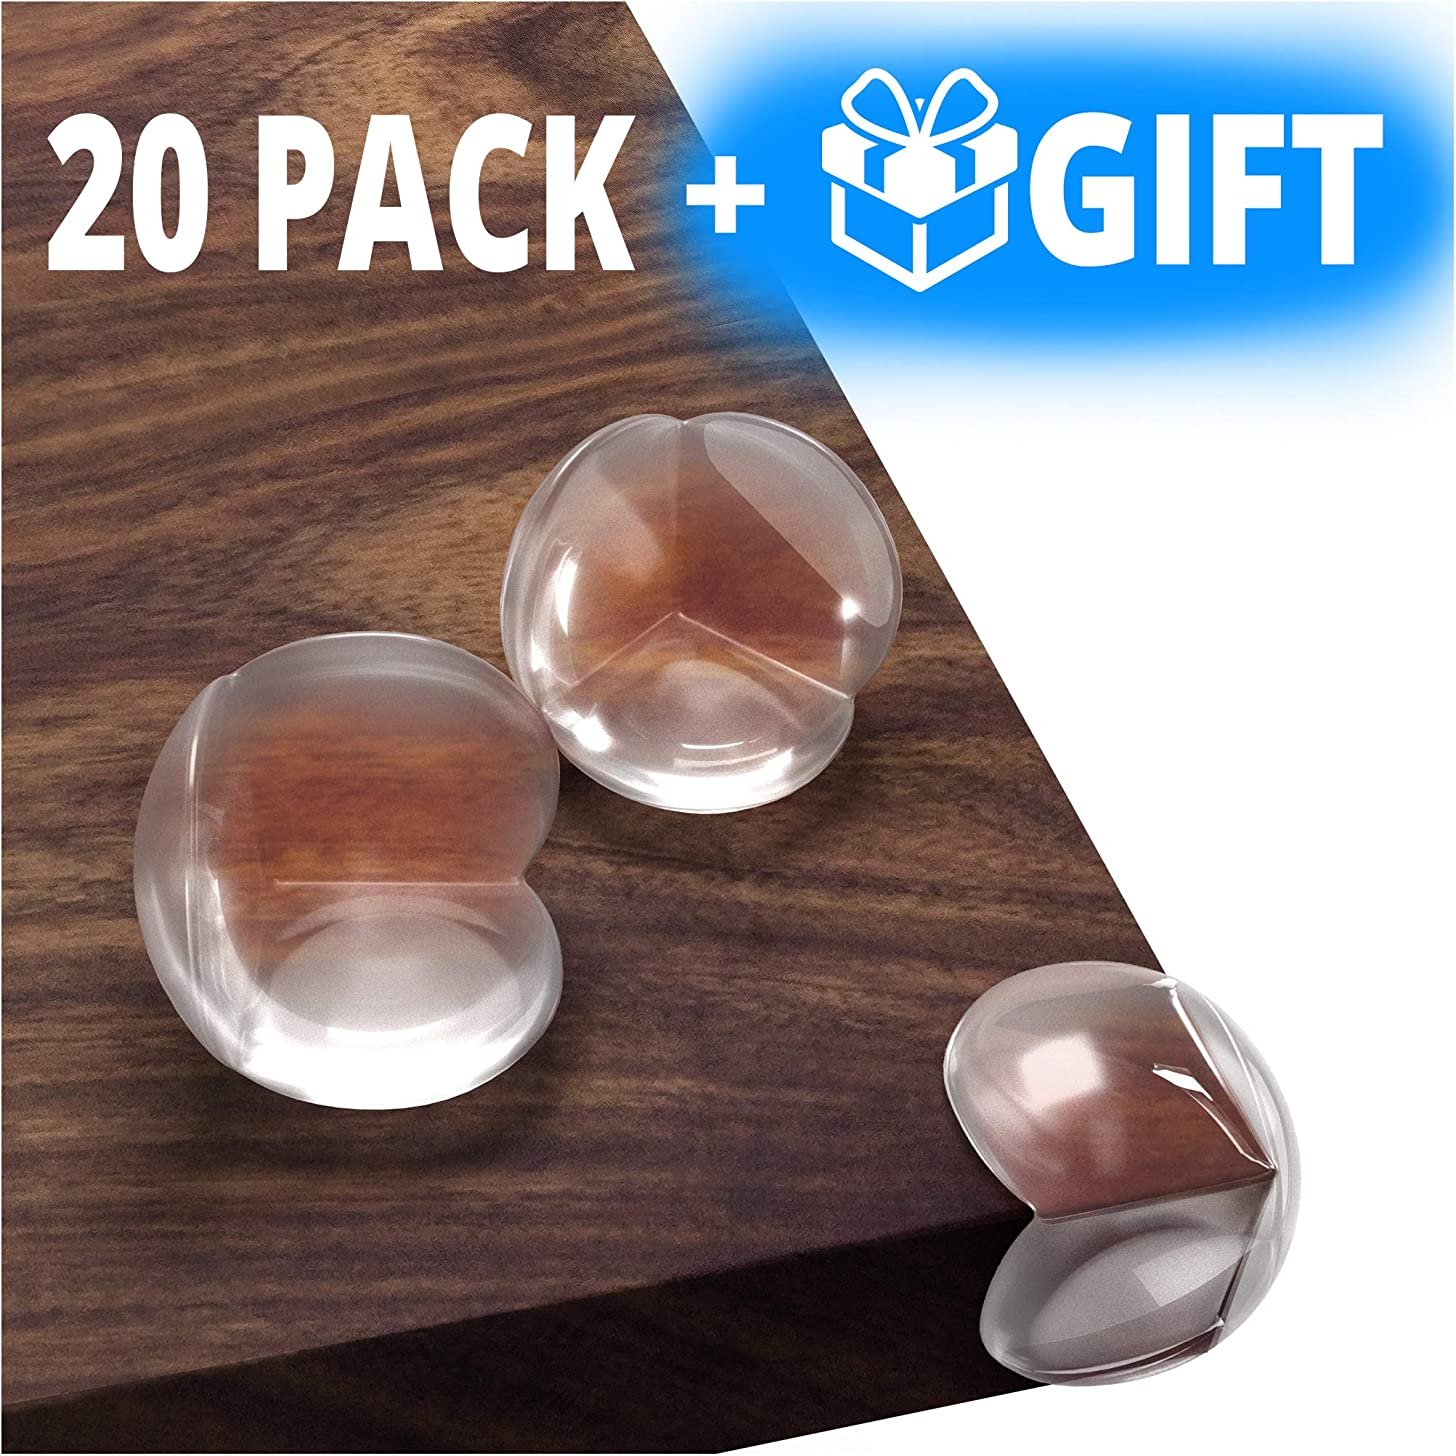 Kids Clear Corner Guards -20 Pack + Free Gift- Child Safety Sharp Corner Protector – Table Corner Protectors for Baby Proofing - Baby Safety Adhesive Edge Bumpers - Glass Furniture Child Proof Guards